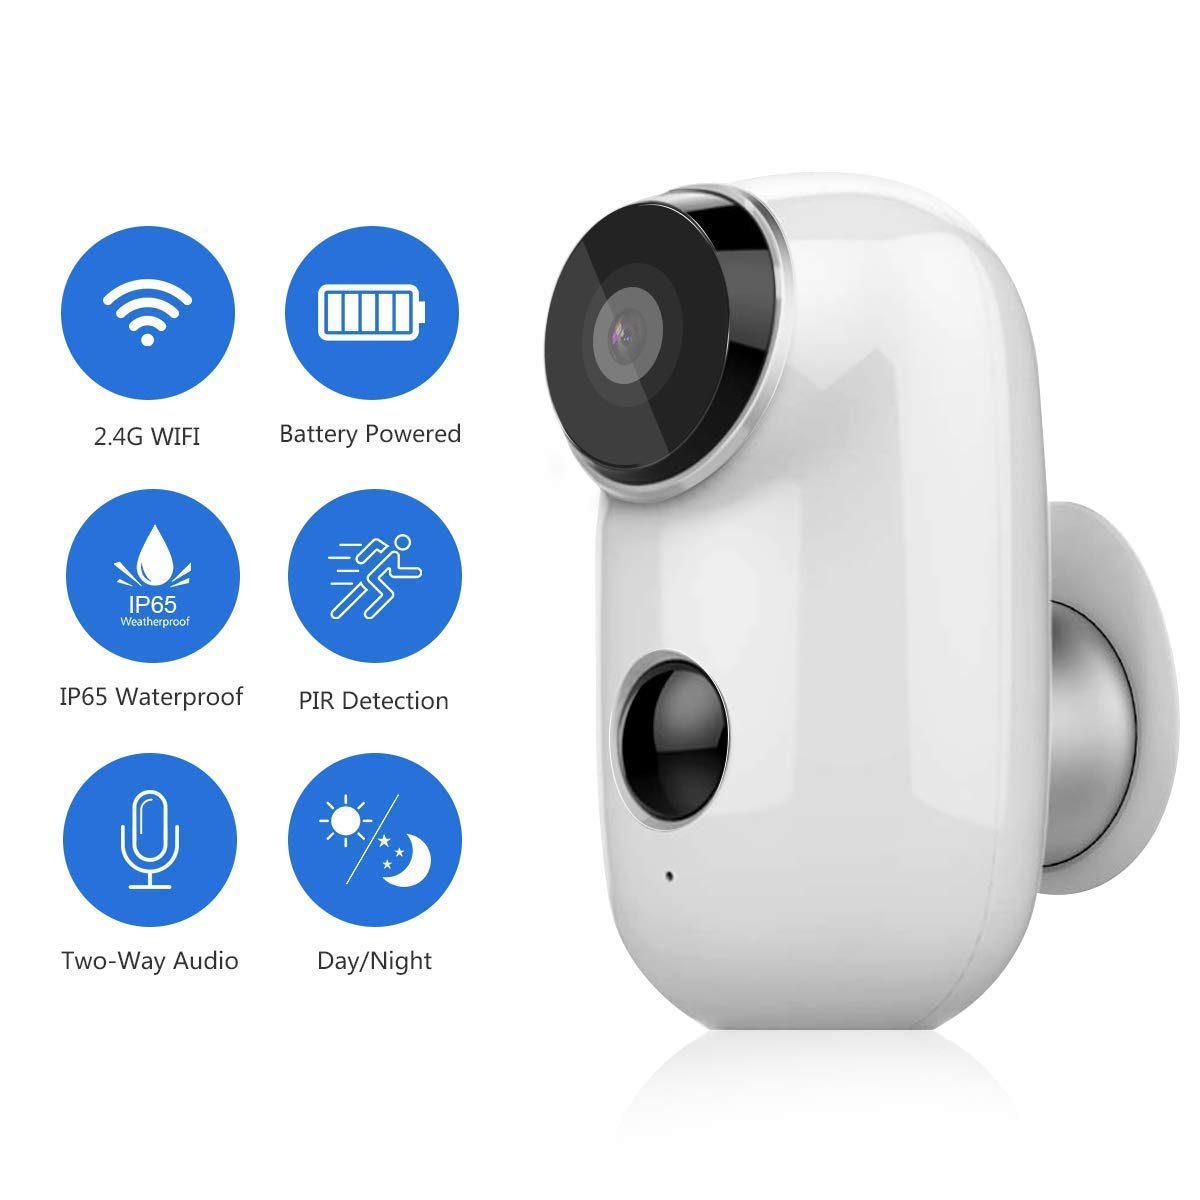 1080P Wireless Rechargeable Battery Security Camera WiFi IP Camera Wire-Free Waterproof Indoor Outdoor Security Camera with Two Way Audio PIR Sensor Body Detection 2MP HD Night Vision by Smart ZZ